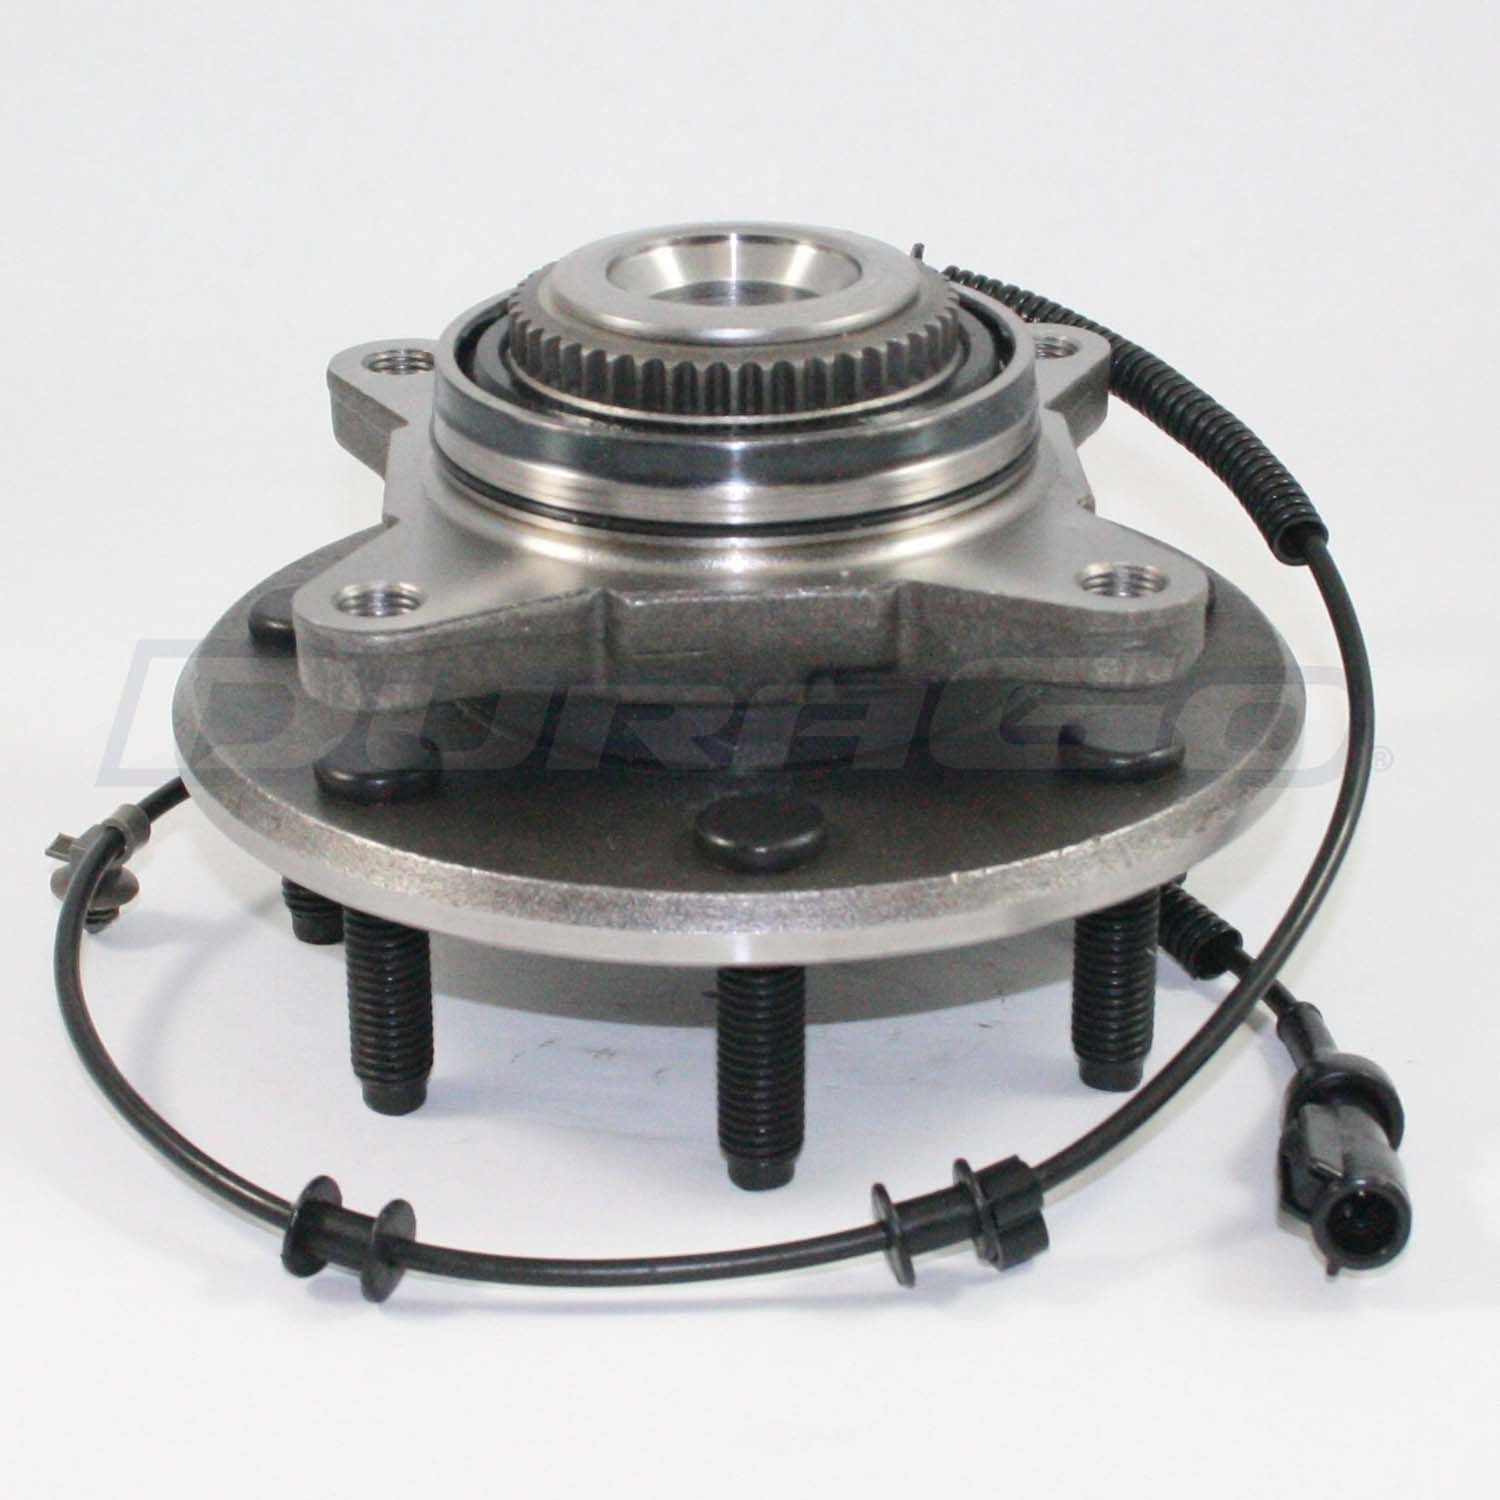 DURAGO - Axle Bearing and Hub Assembly - D48 295-15080